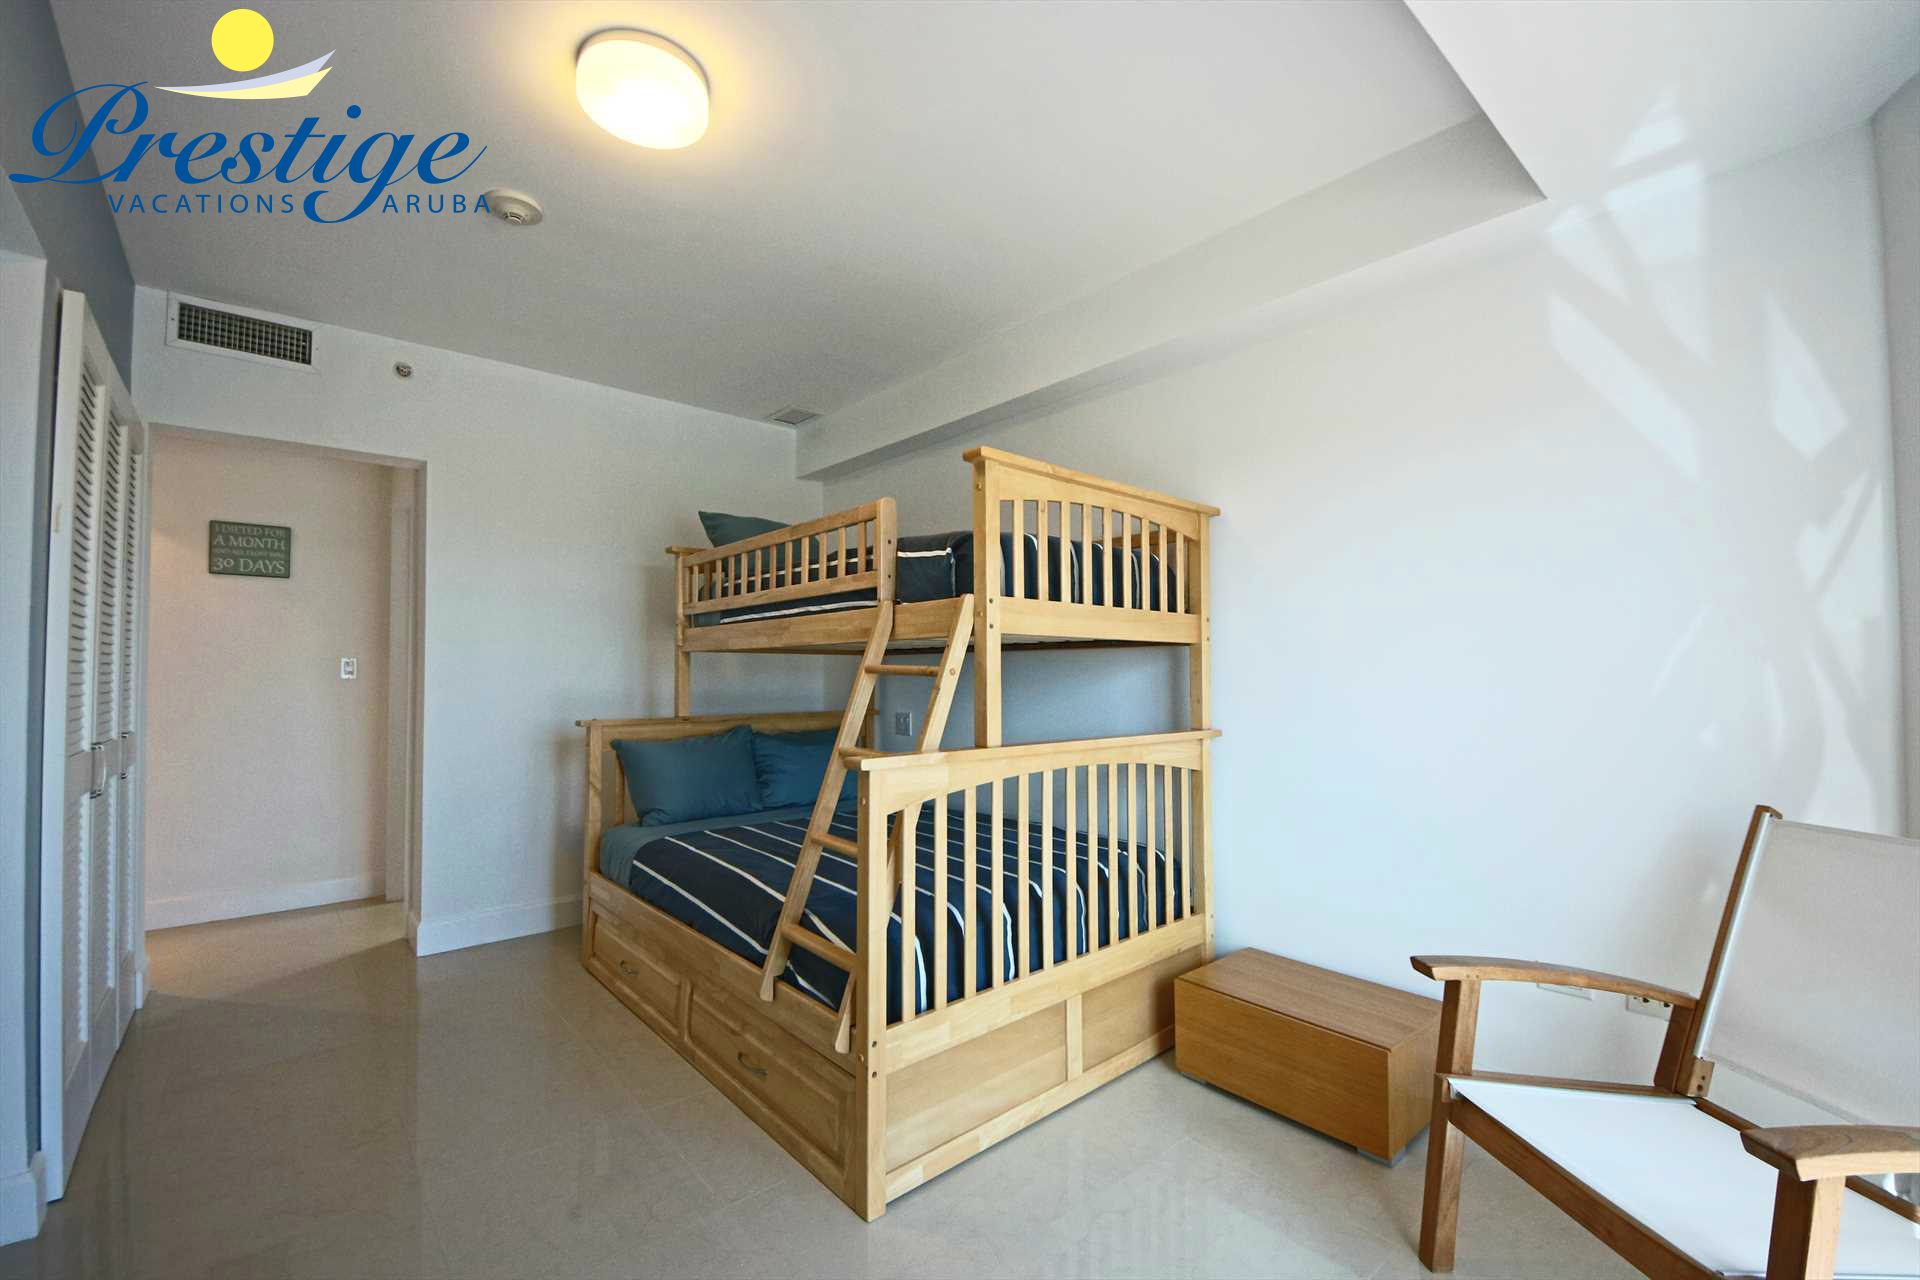 Third bedroom with a full-size bunk bed and twin-size bed on top plus a trundle bed (twin-size)